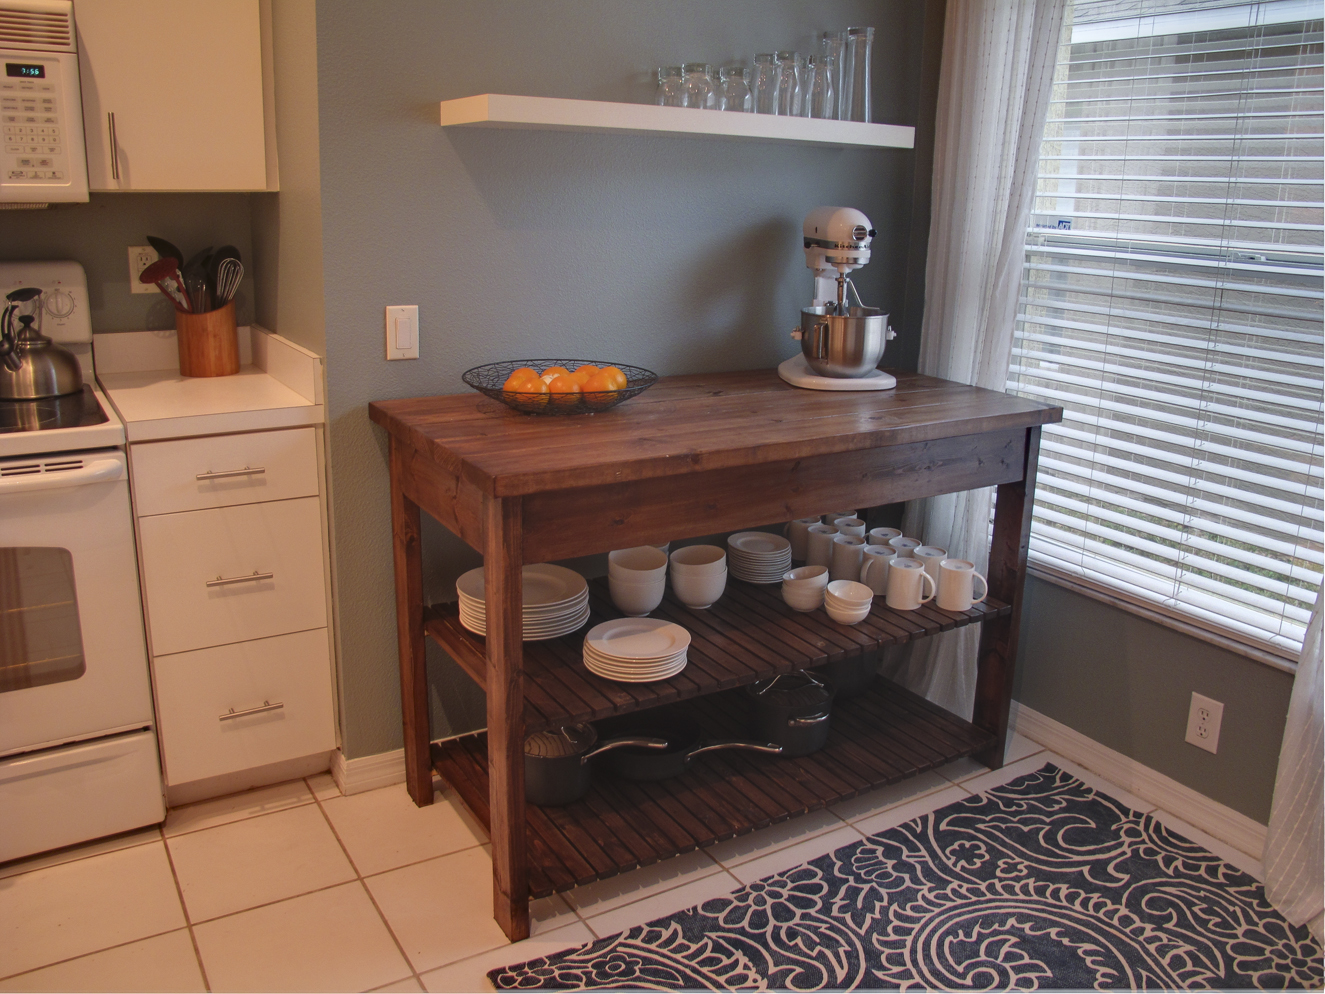 Diy Kitchen Island Plans domestic jenny: diy kitchen island plans